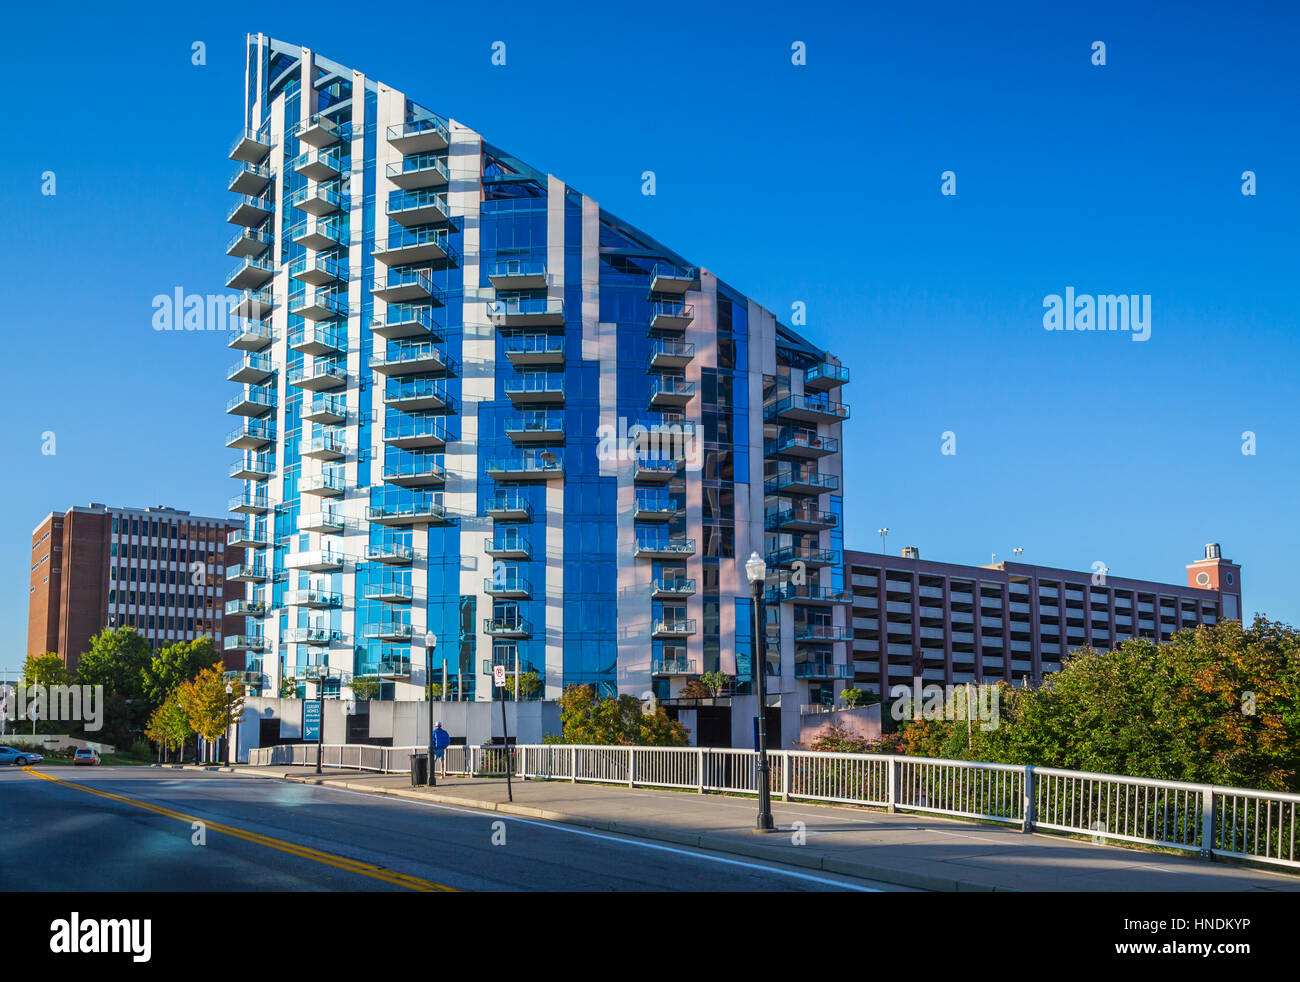 The unique architecture of a condominium in Cincinnati, Ohio, USA. - Stock Image